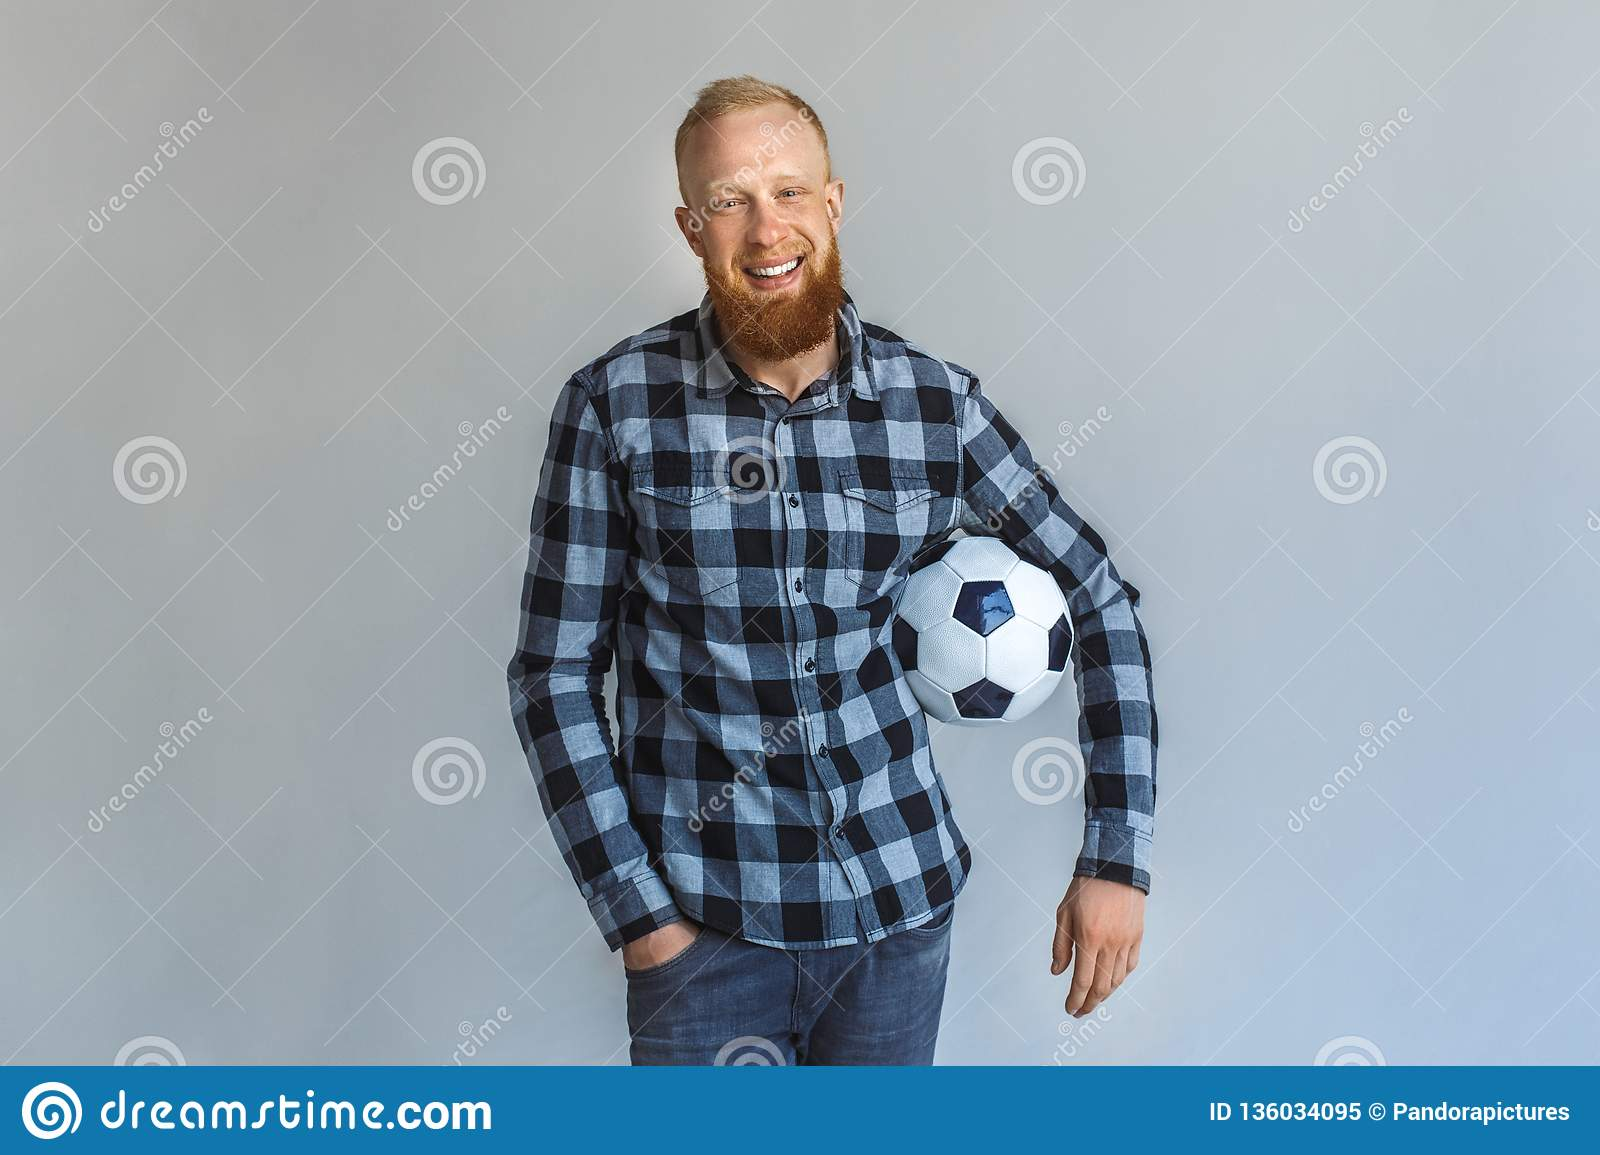 Freestyle. Mature man standing isolated on grey with ball smiling relaxed